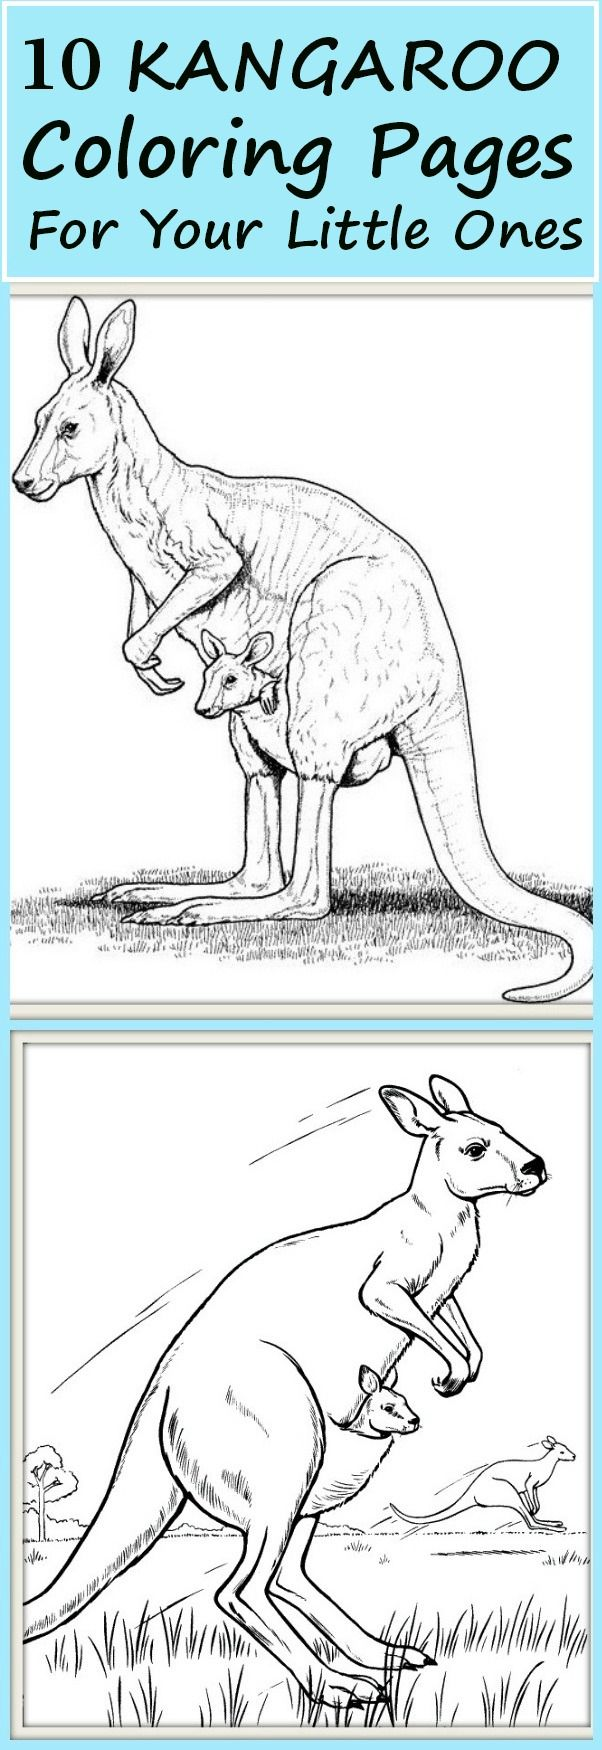 Kangaroo colouring page 2 - 10 Cute Kangaroo Coloring Pages For Your Little Ones These Kangaroo Coloring Pages Are Fun